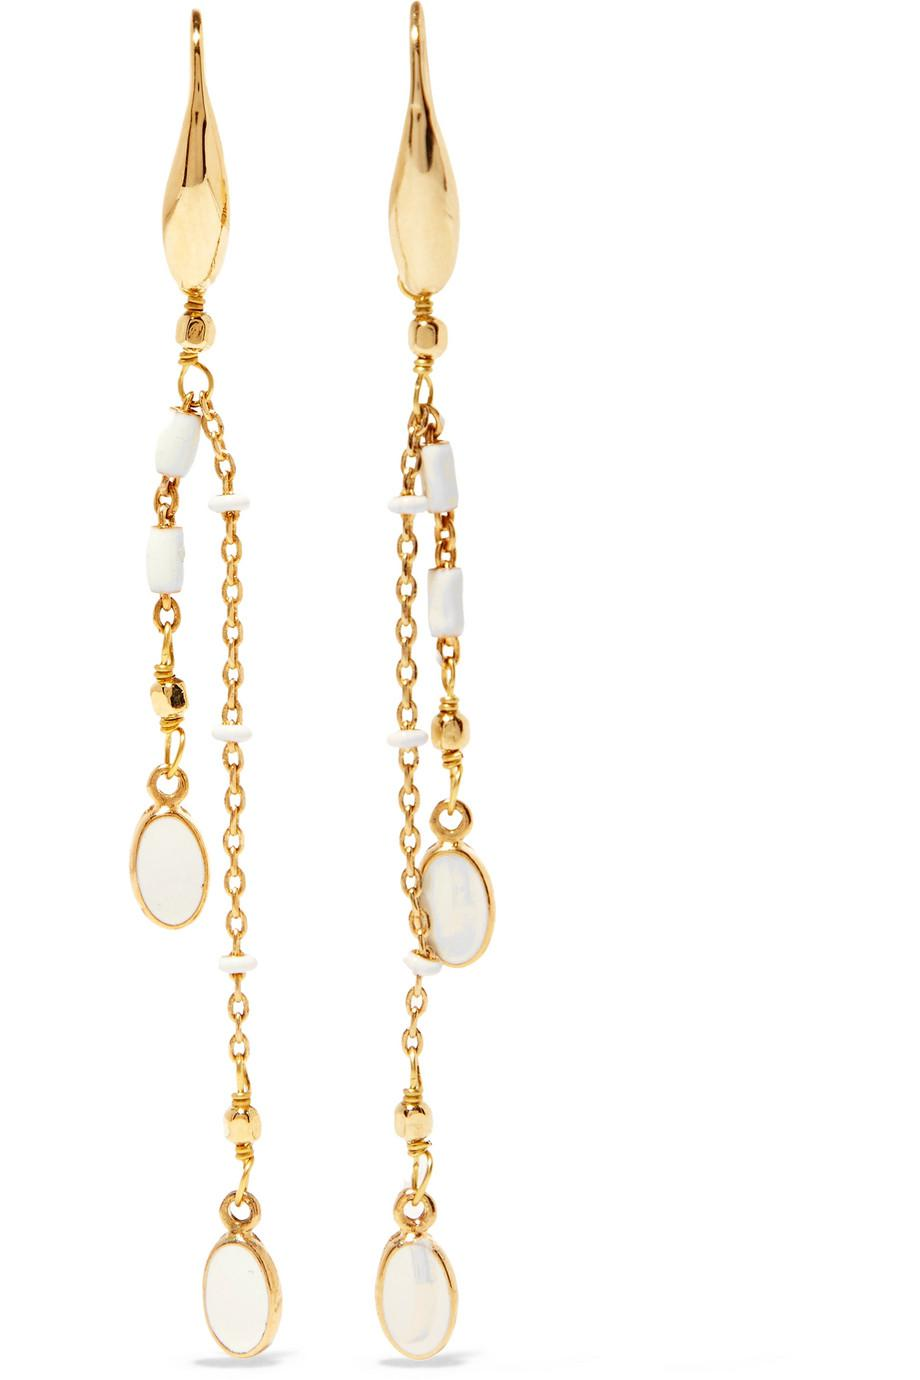 Isabel Marant Gold-tone And Resin Hoop Earrings - Cream ZF6YM7MYdz